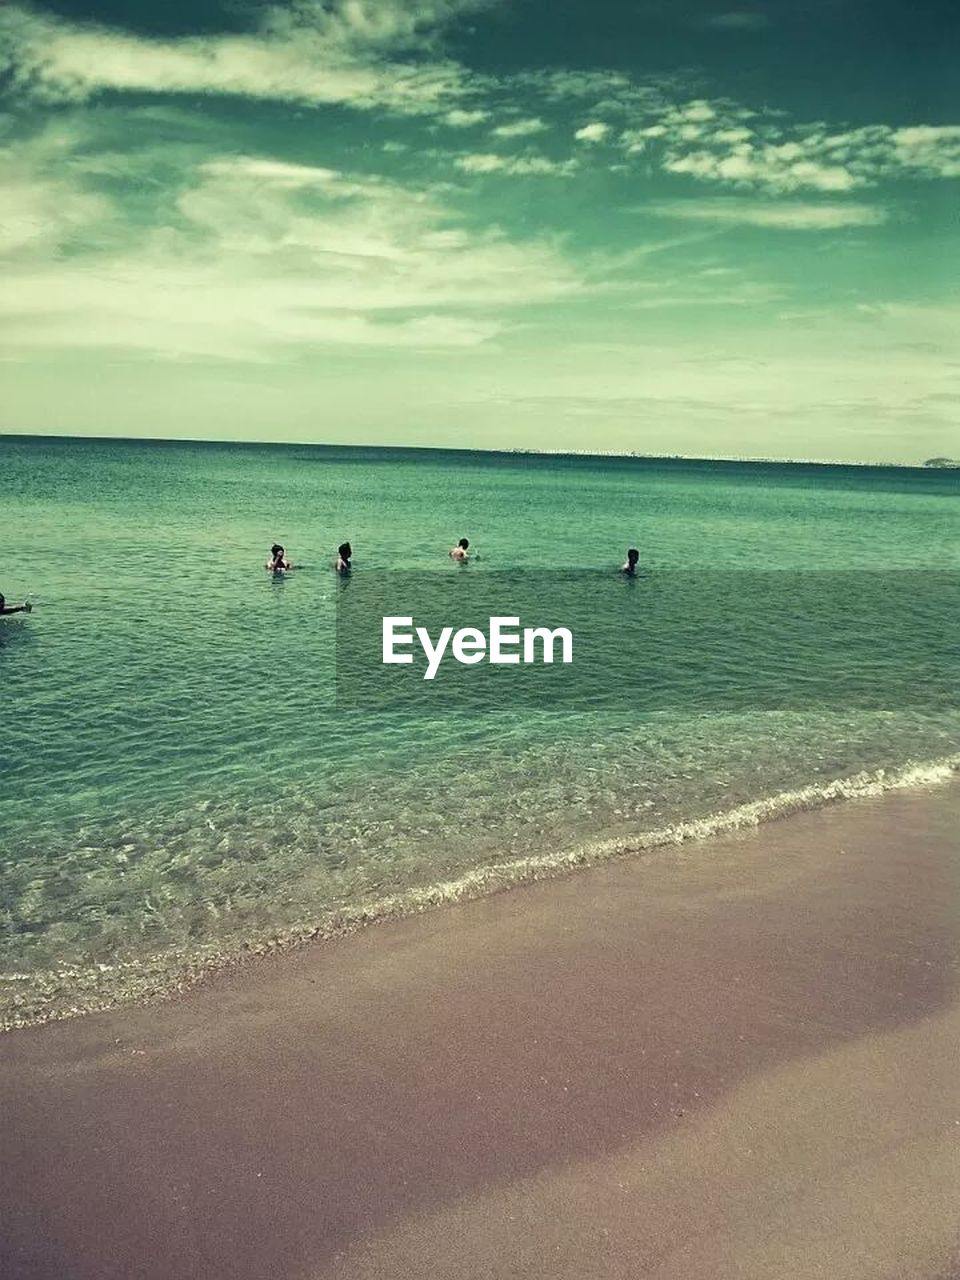 sea, water, beach, horizon over water, scenics, sky, beauty in nature, tranquil scene, sand, nature, tranquility, vacations, day, cloud - sky, leisure activity, outdoors, real people, large group of people, men, people